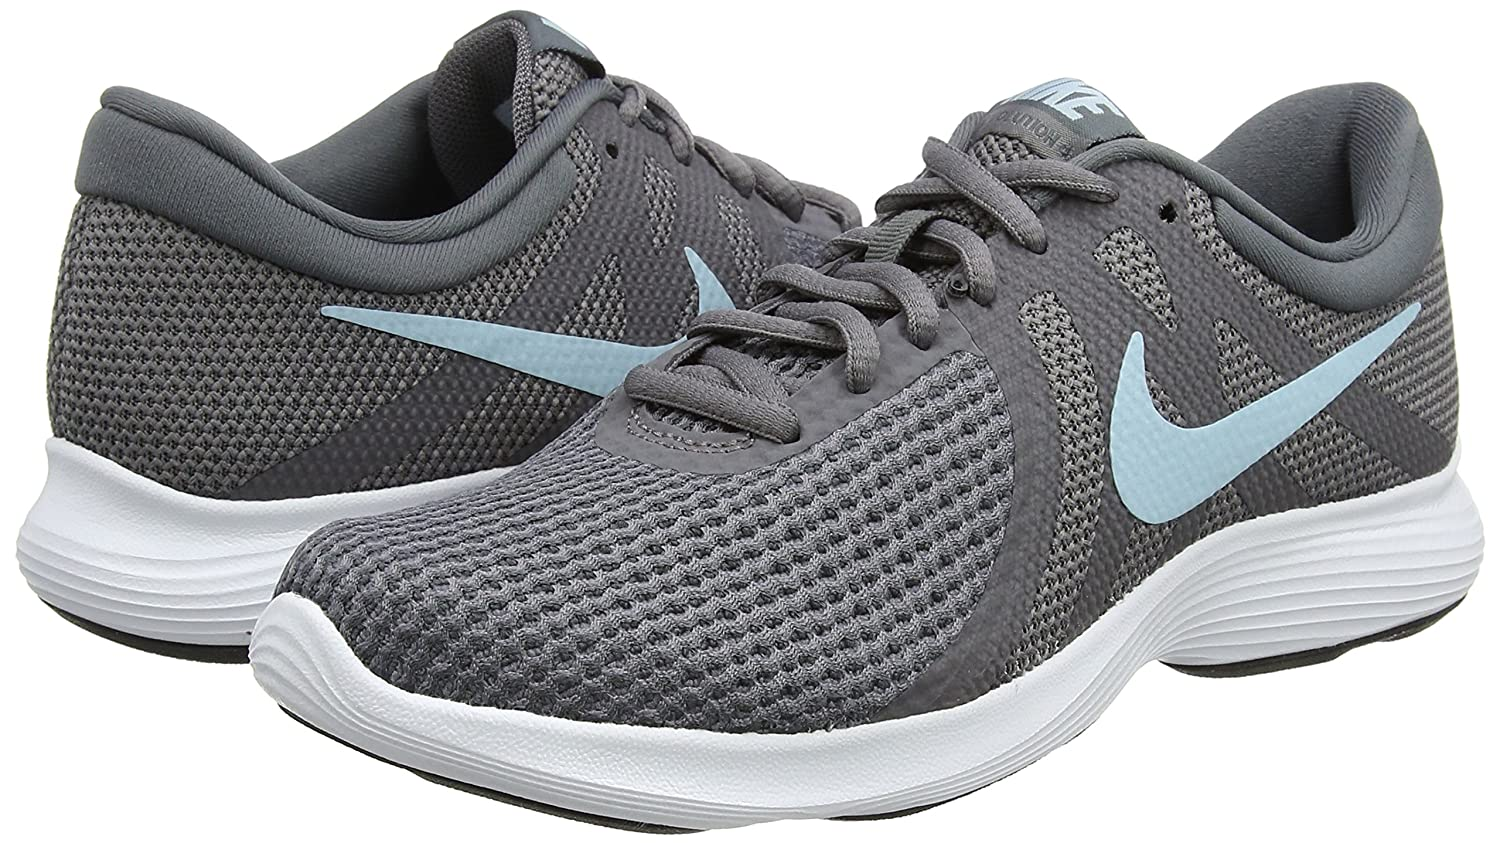 06a74d70c61f Nike Women s Revolution 4 Competition Running Shoes